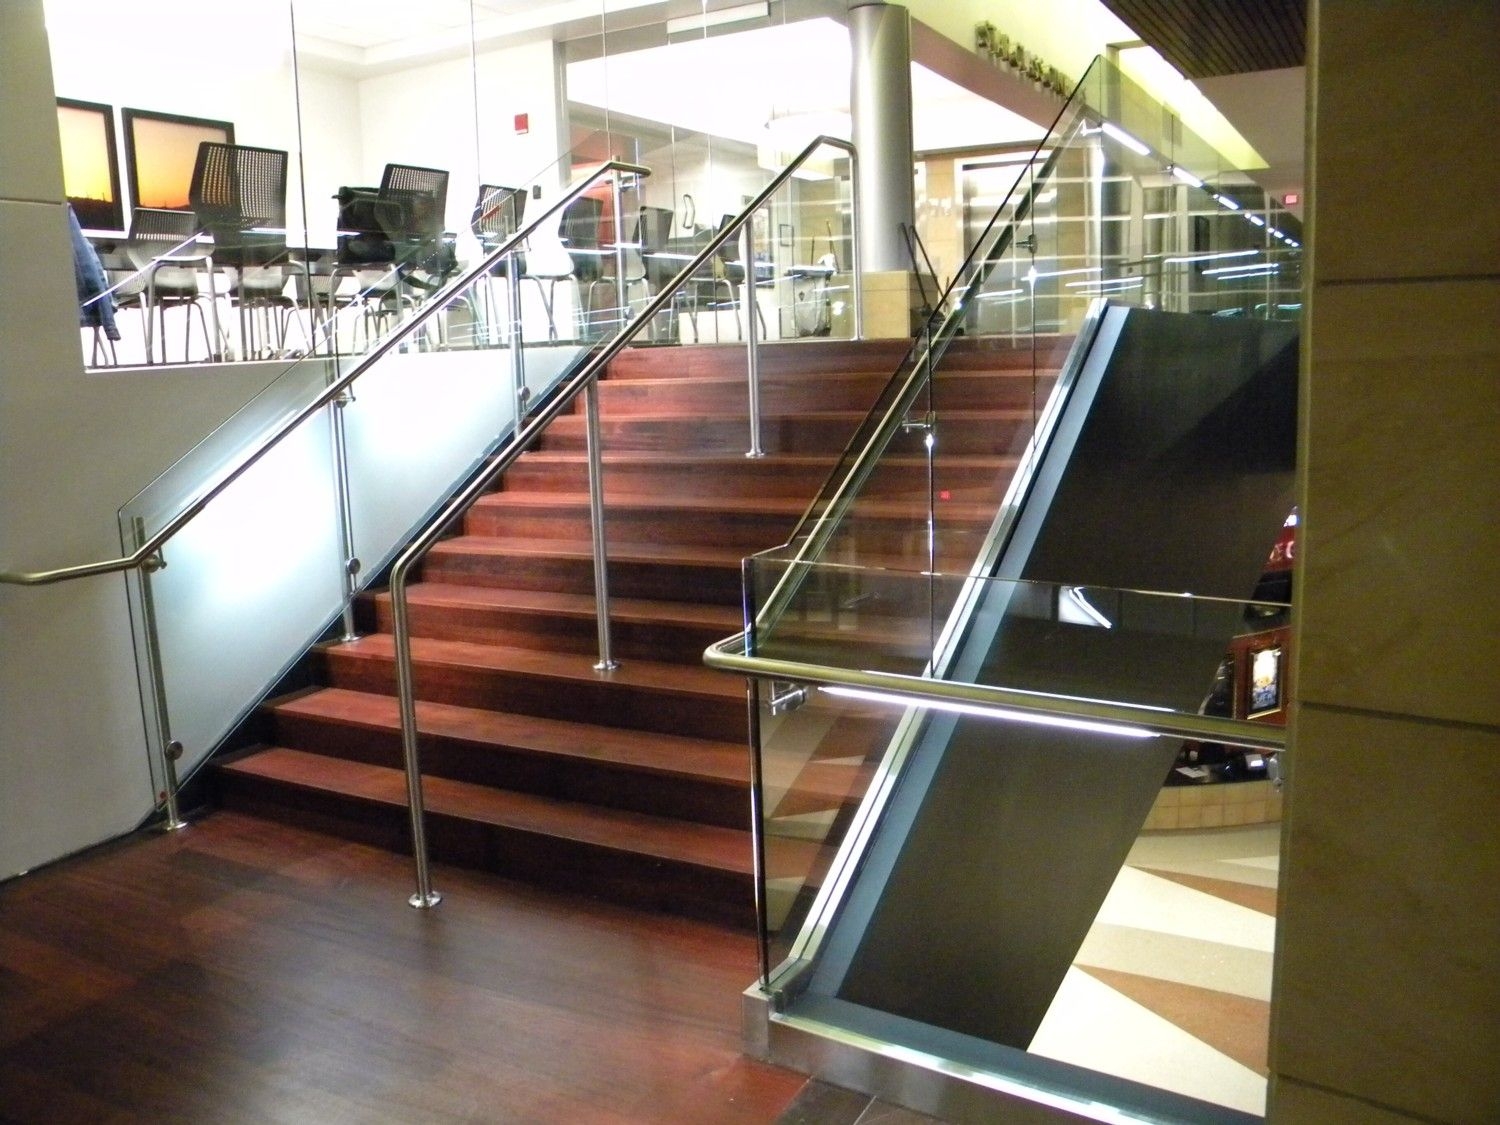 Best Lighted Handrail Lumenrail Architecutural Lighting 640 x 480